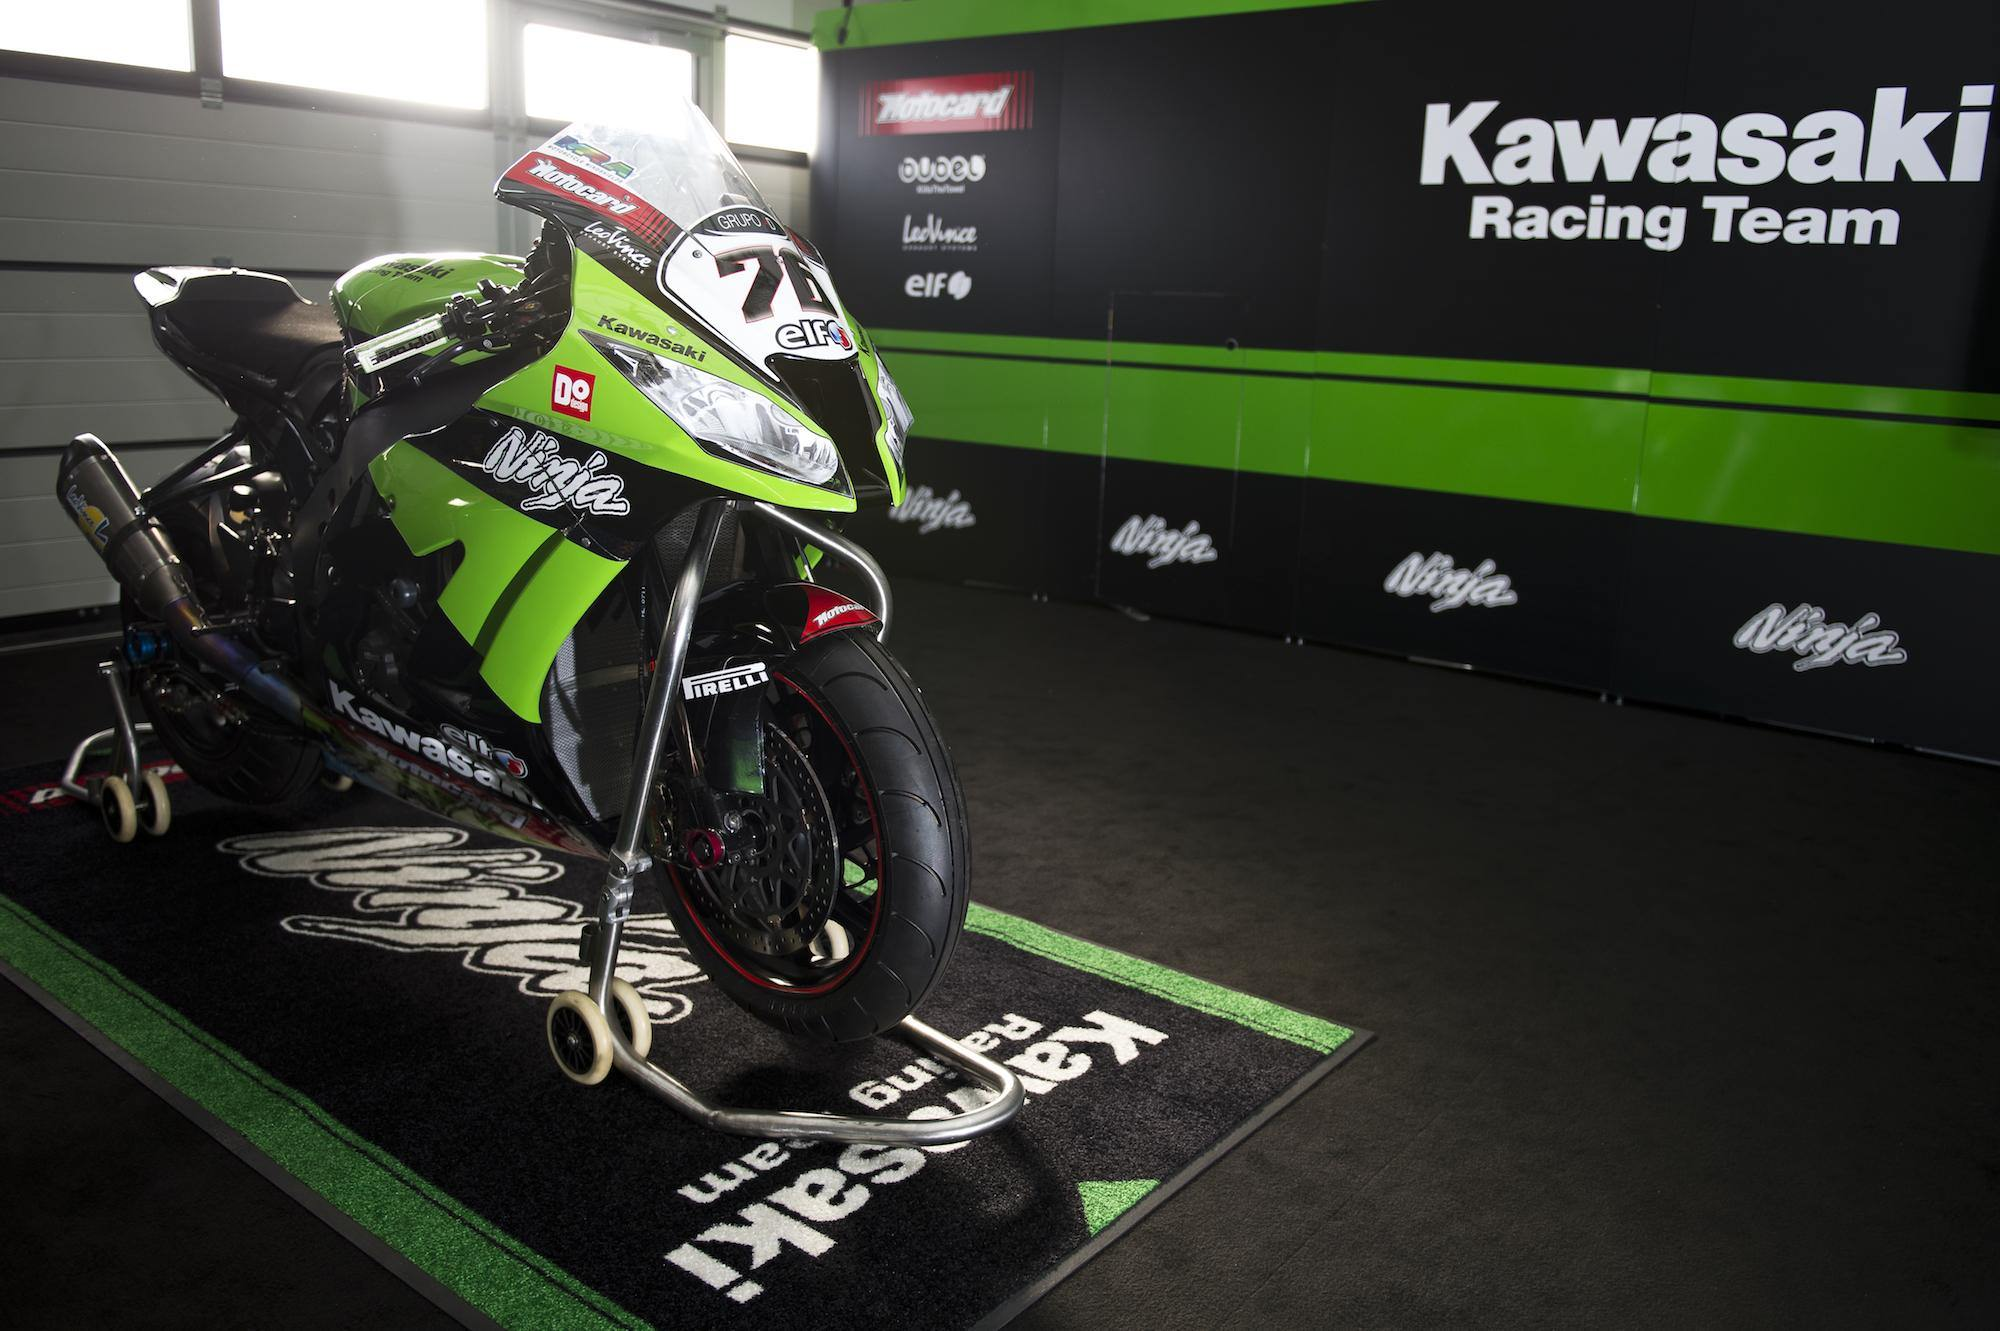 Kawasaki Motorcycle Racing Logo